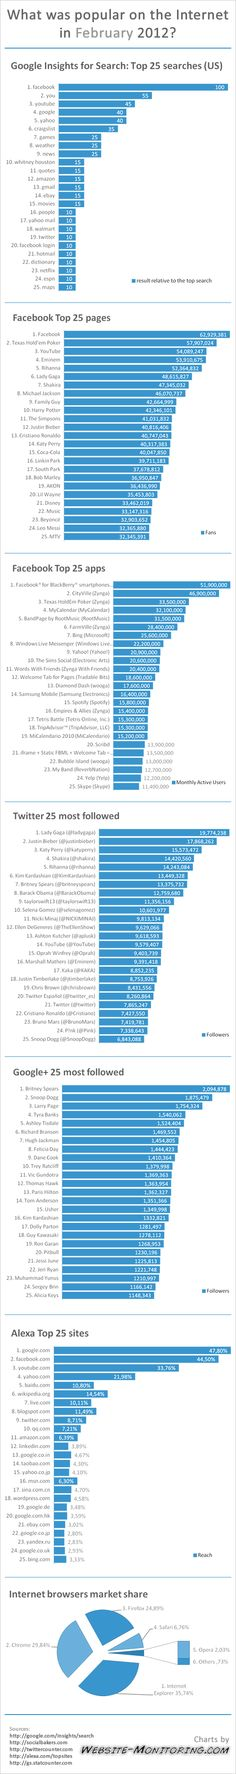 Top websites, Google searches, Facebook pages and apps, Twitter and Google+ most followed in February 2012